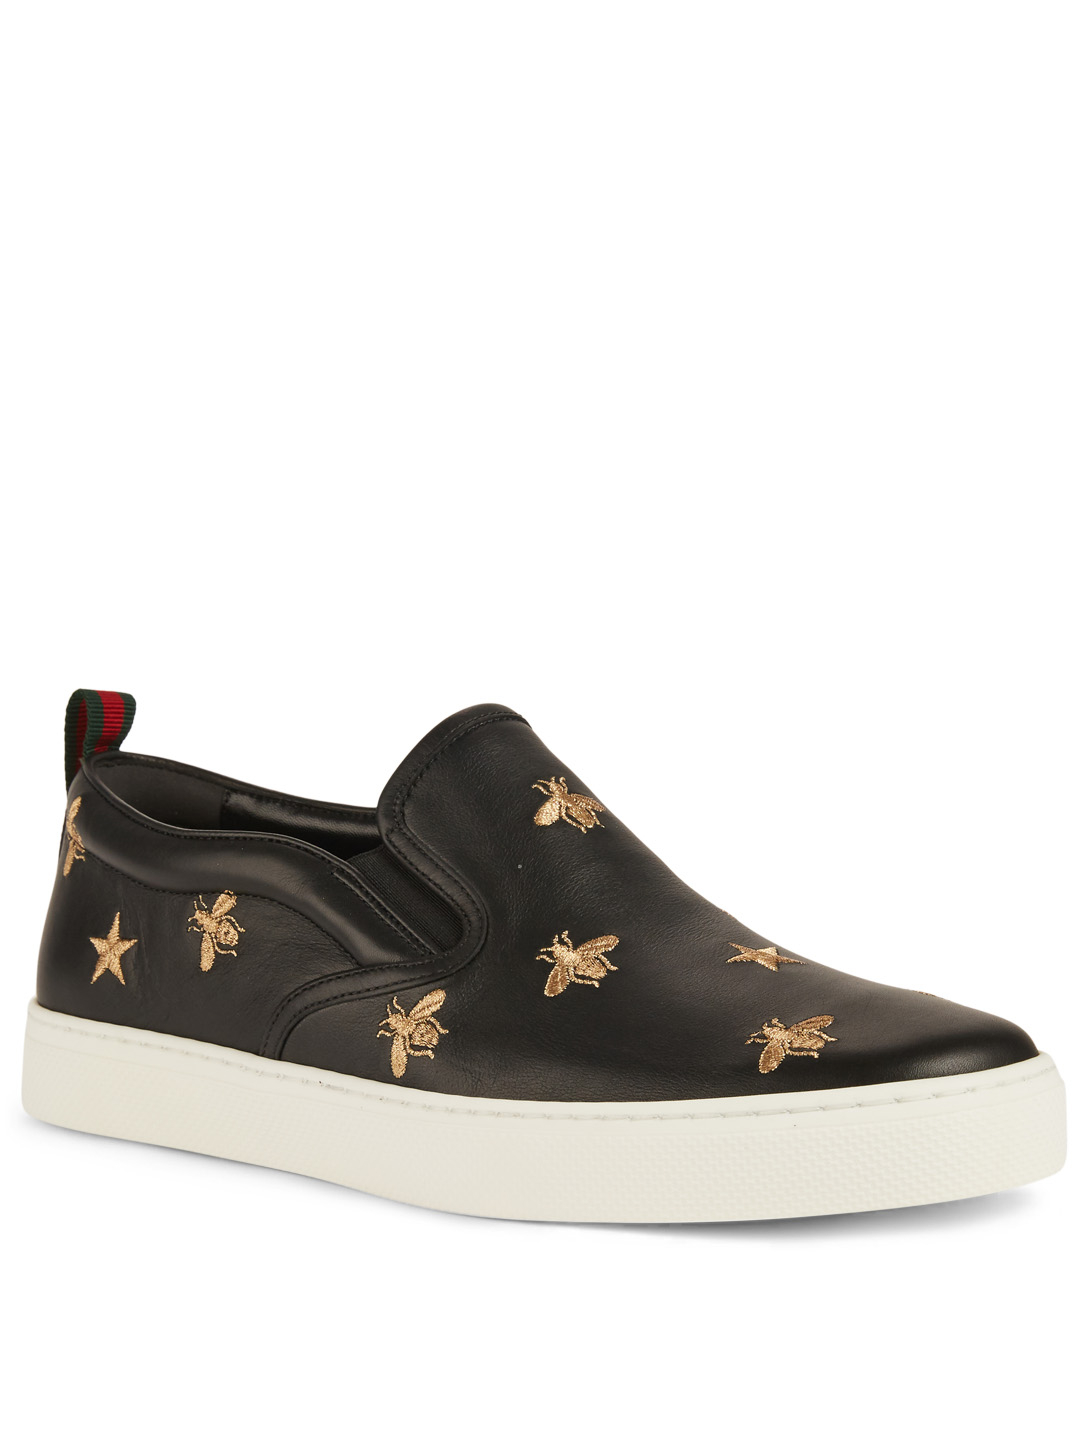 GUCCI Leather Slip-On Sneakers With Bees Designers Black